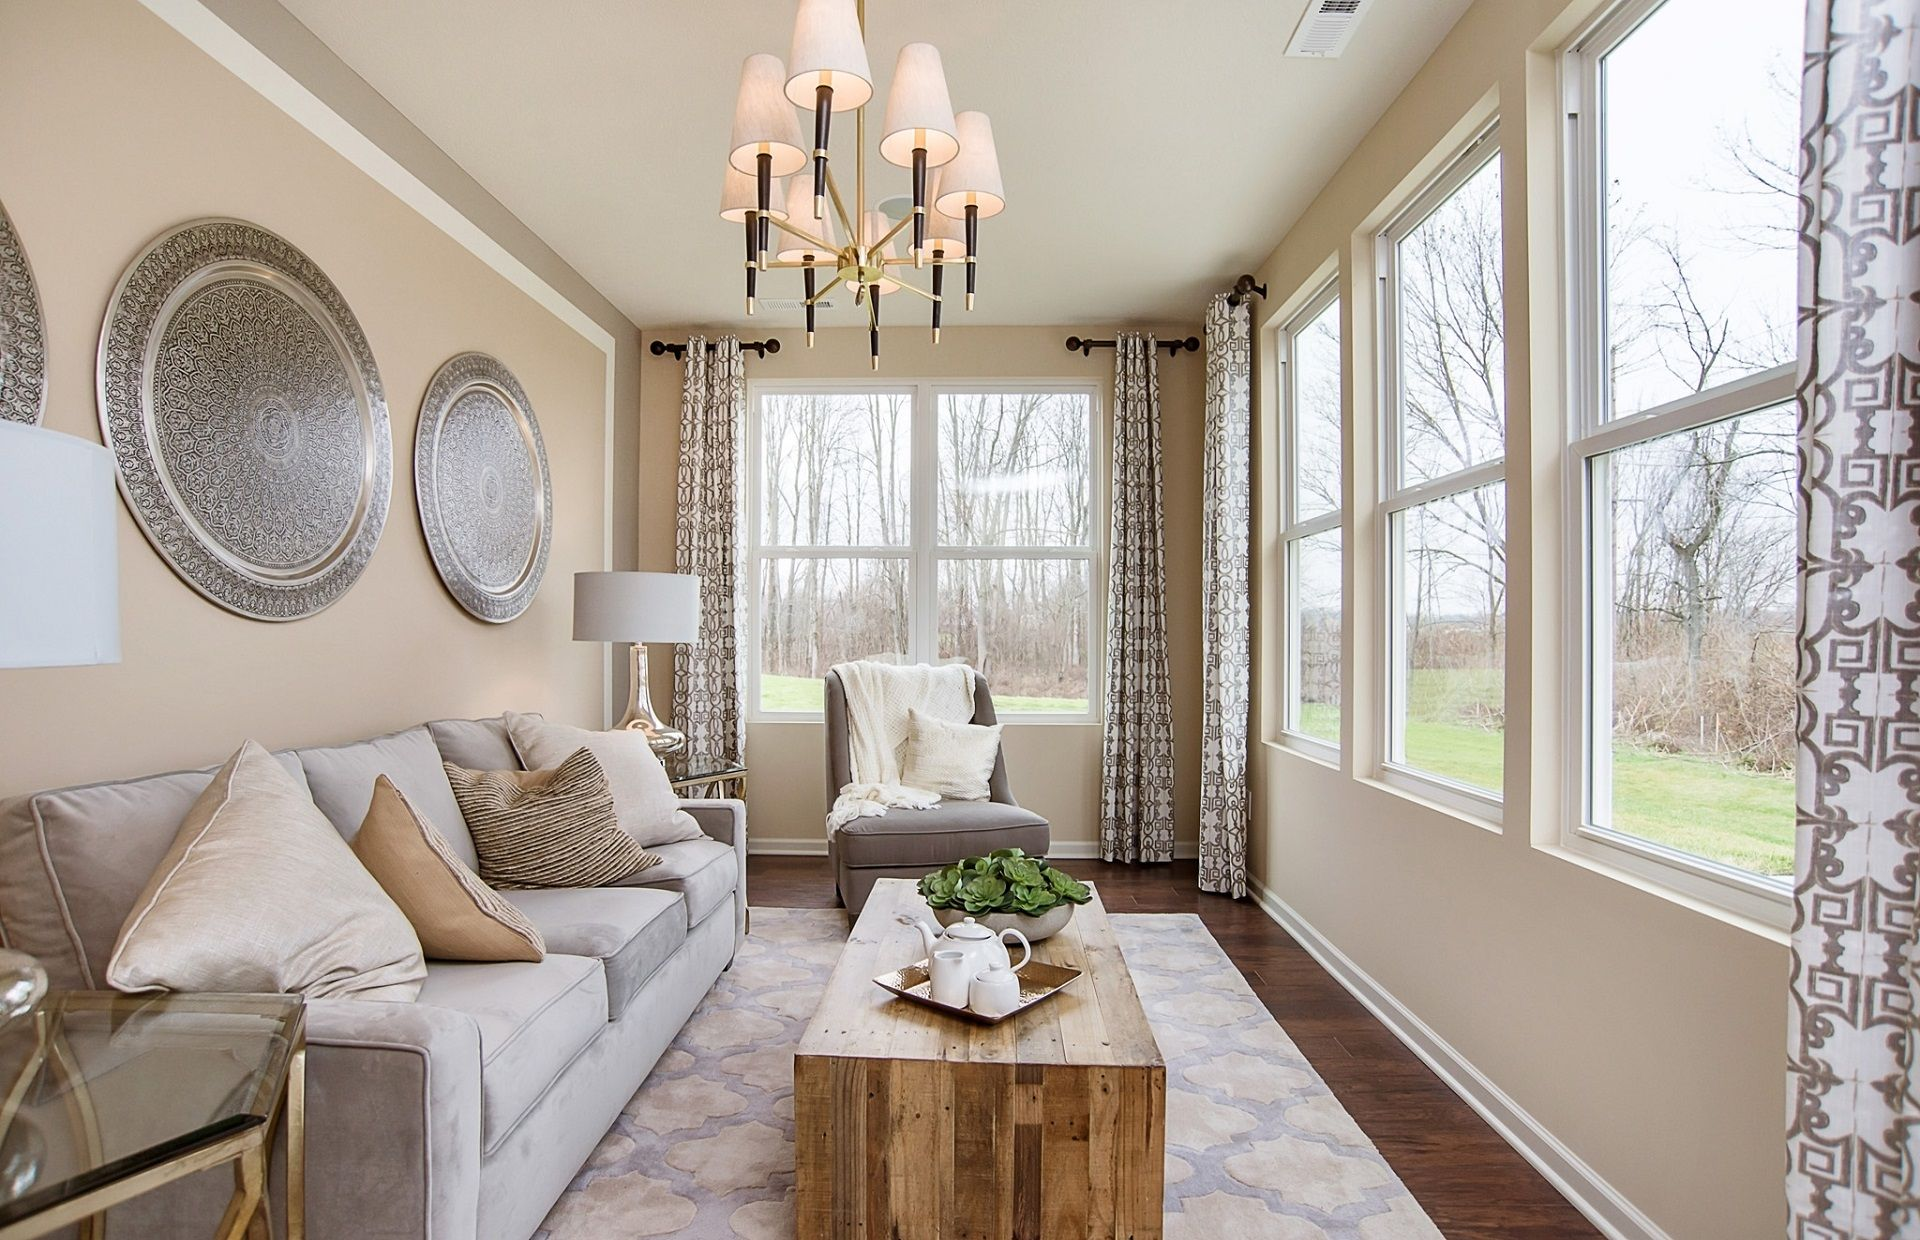 This Fresh Rustic Chic Home Decor Pairs Well With The Great Outdoors Pulte Homes